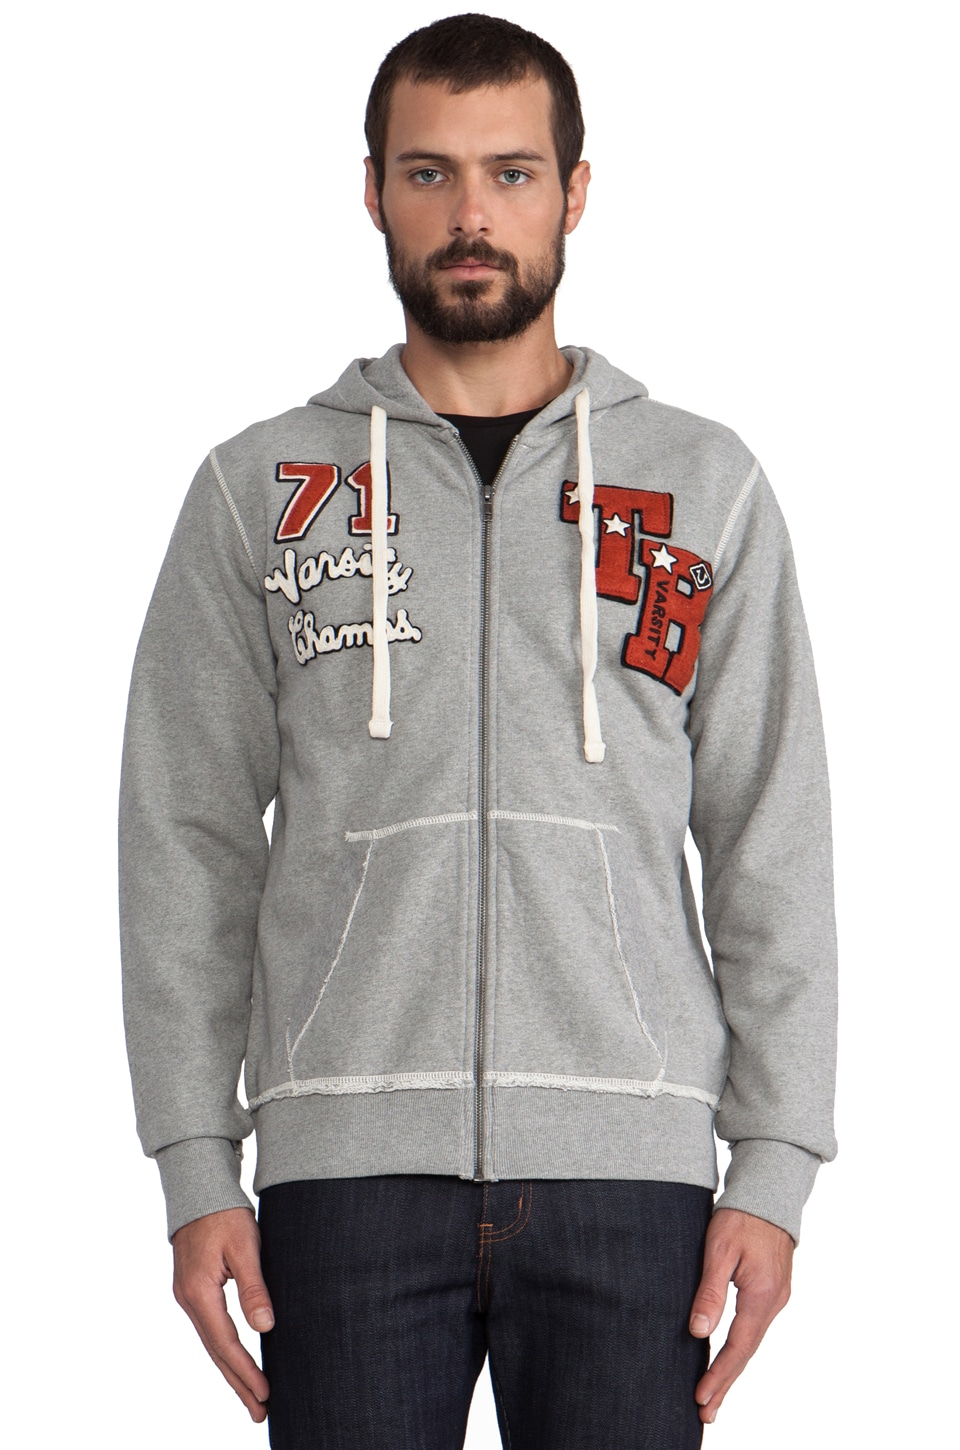 True Religion Varsity Champs Hoodie in Heather Grey